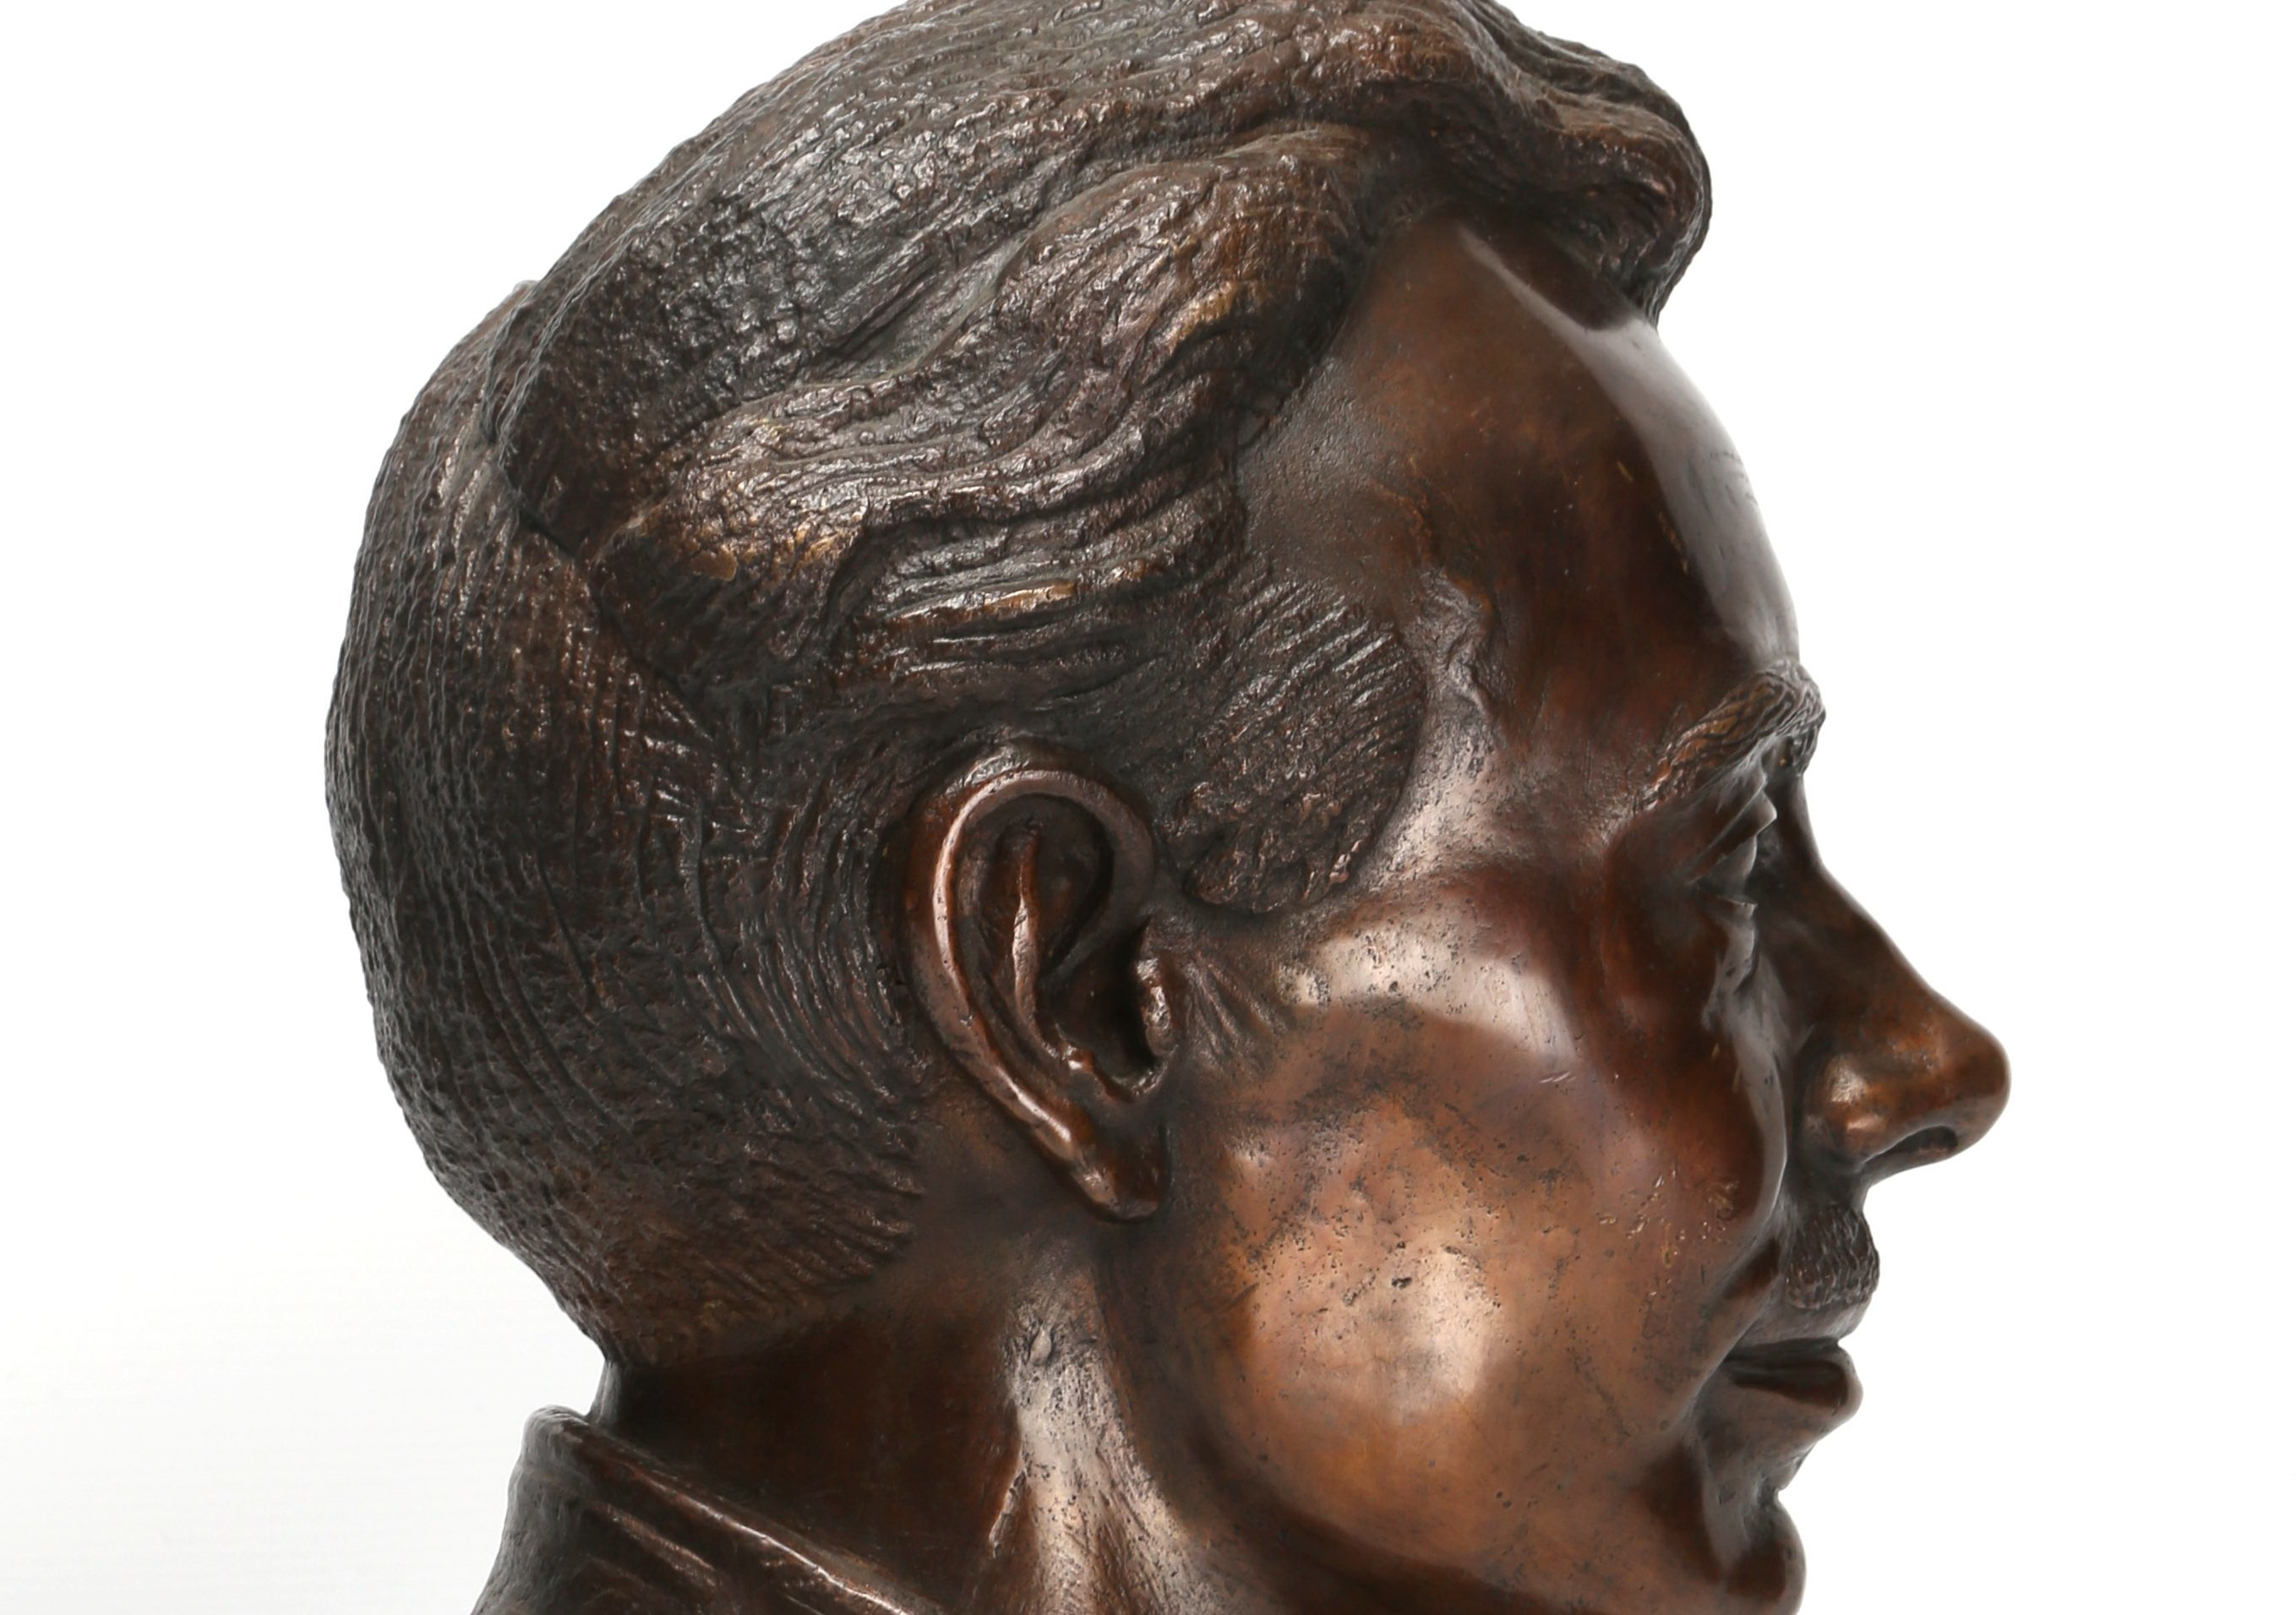 The bronze bust going up for auction.